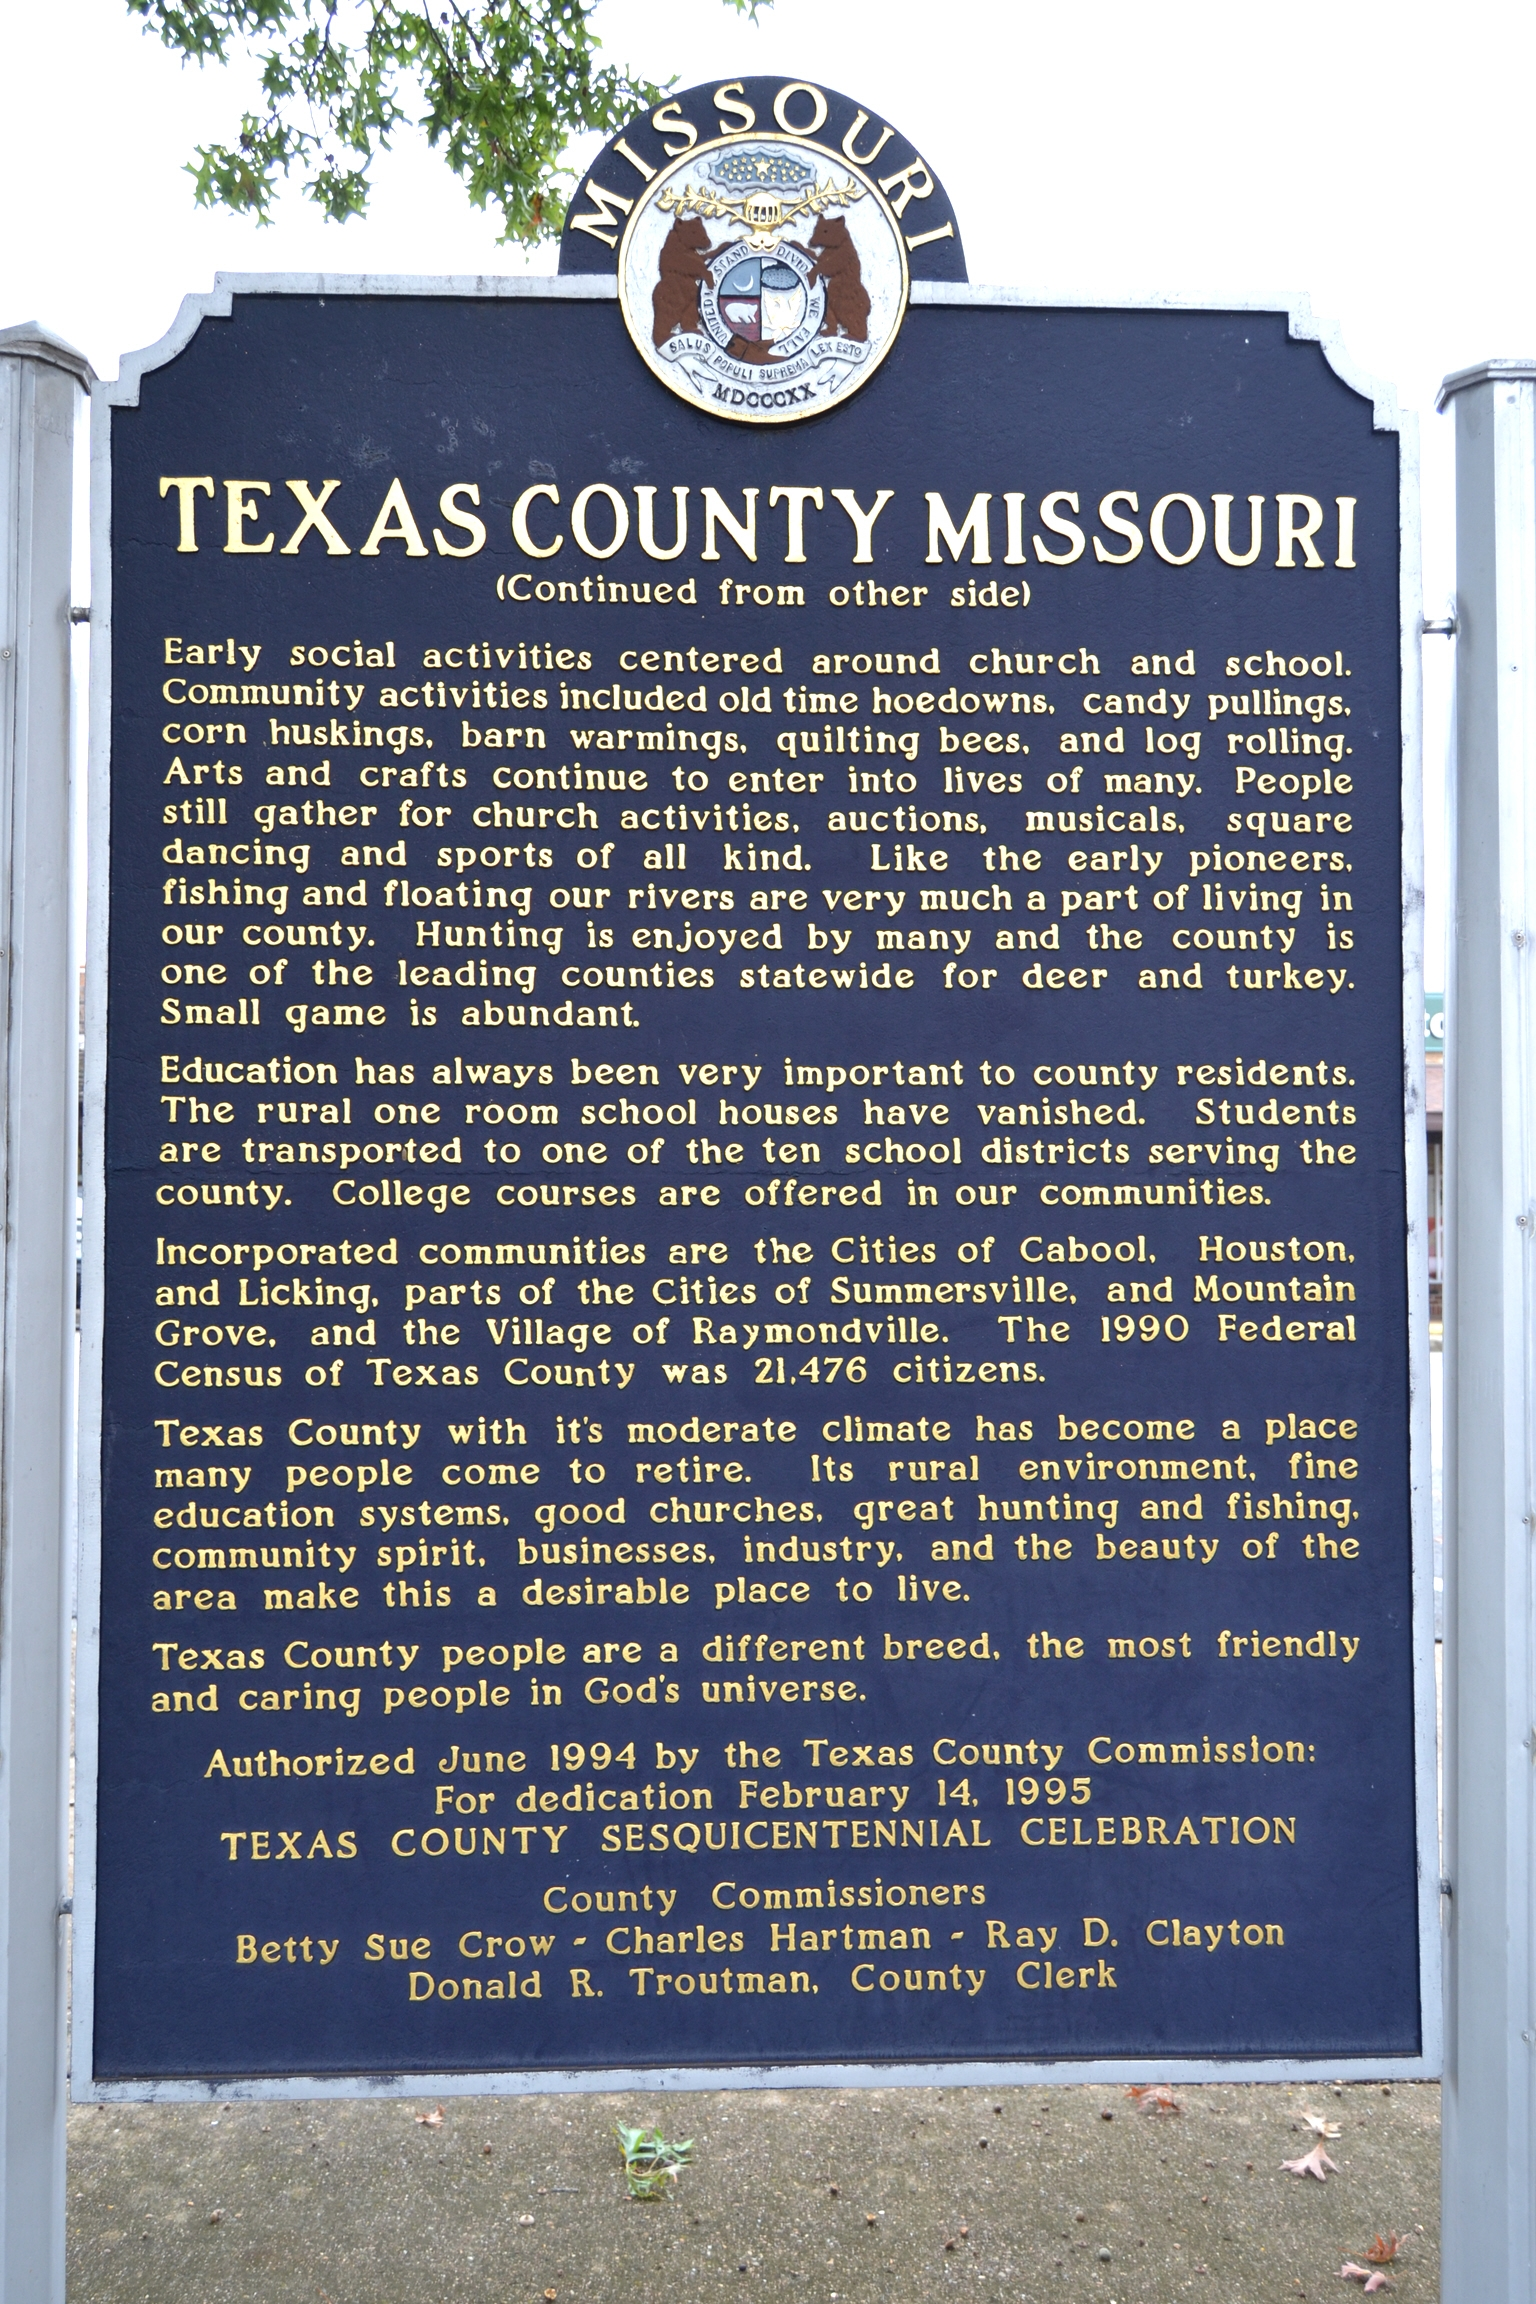 Texas County Missouri Marker